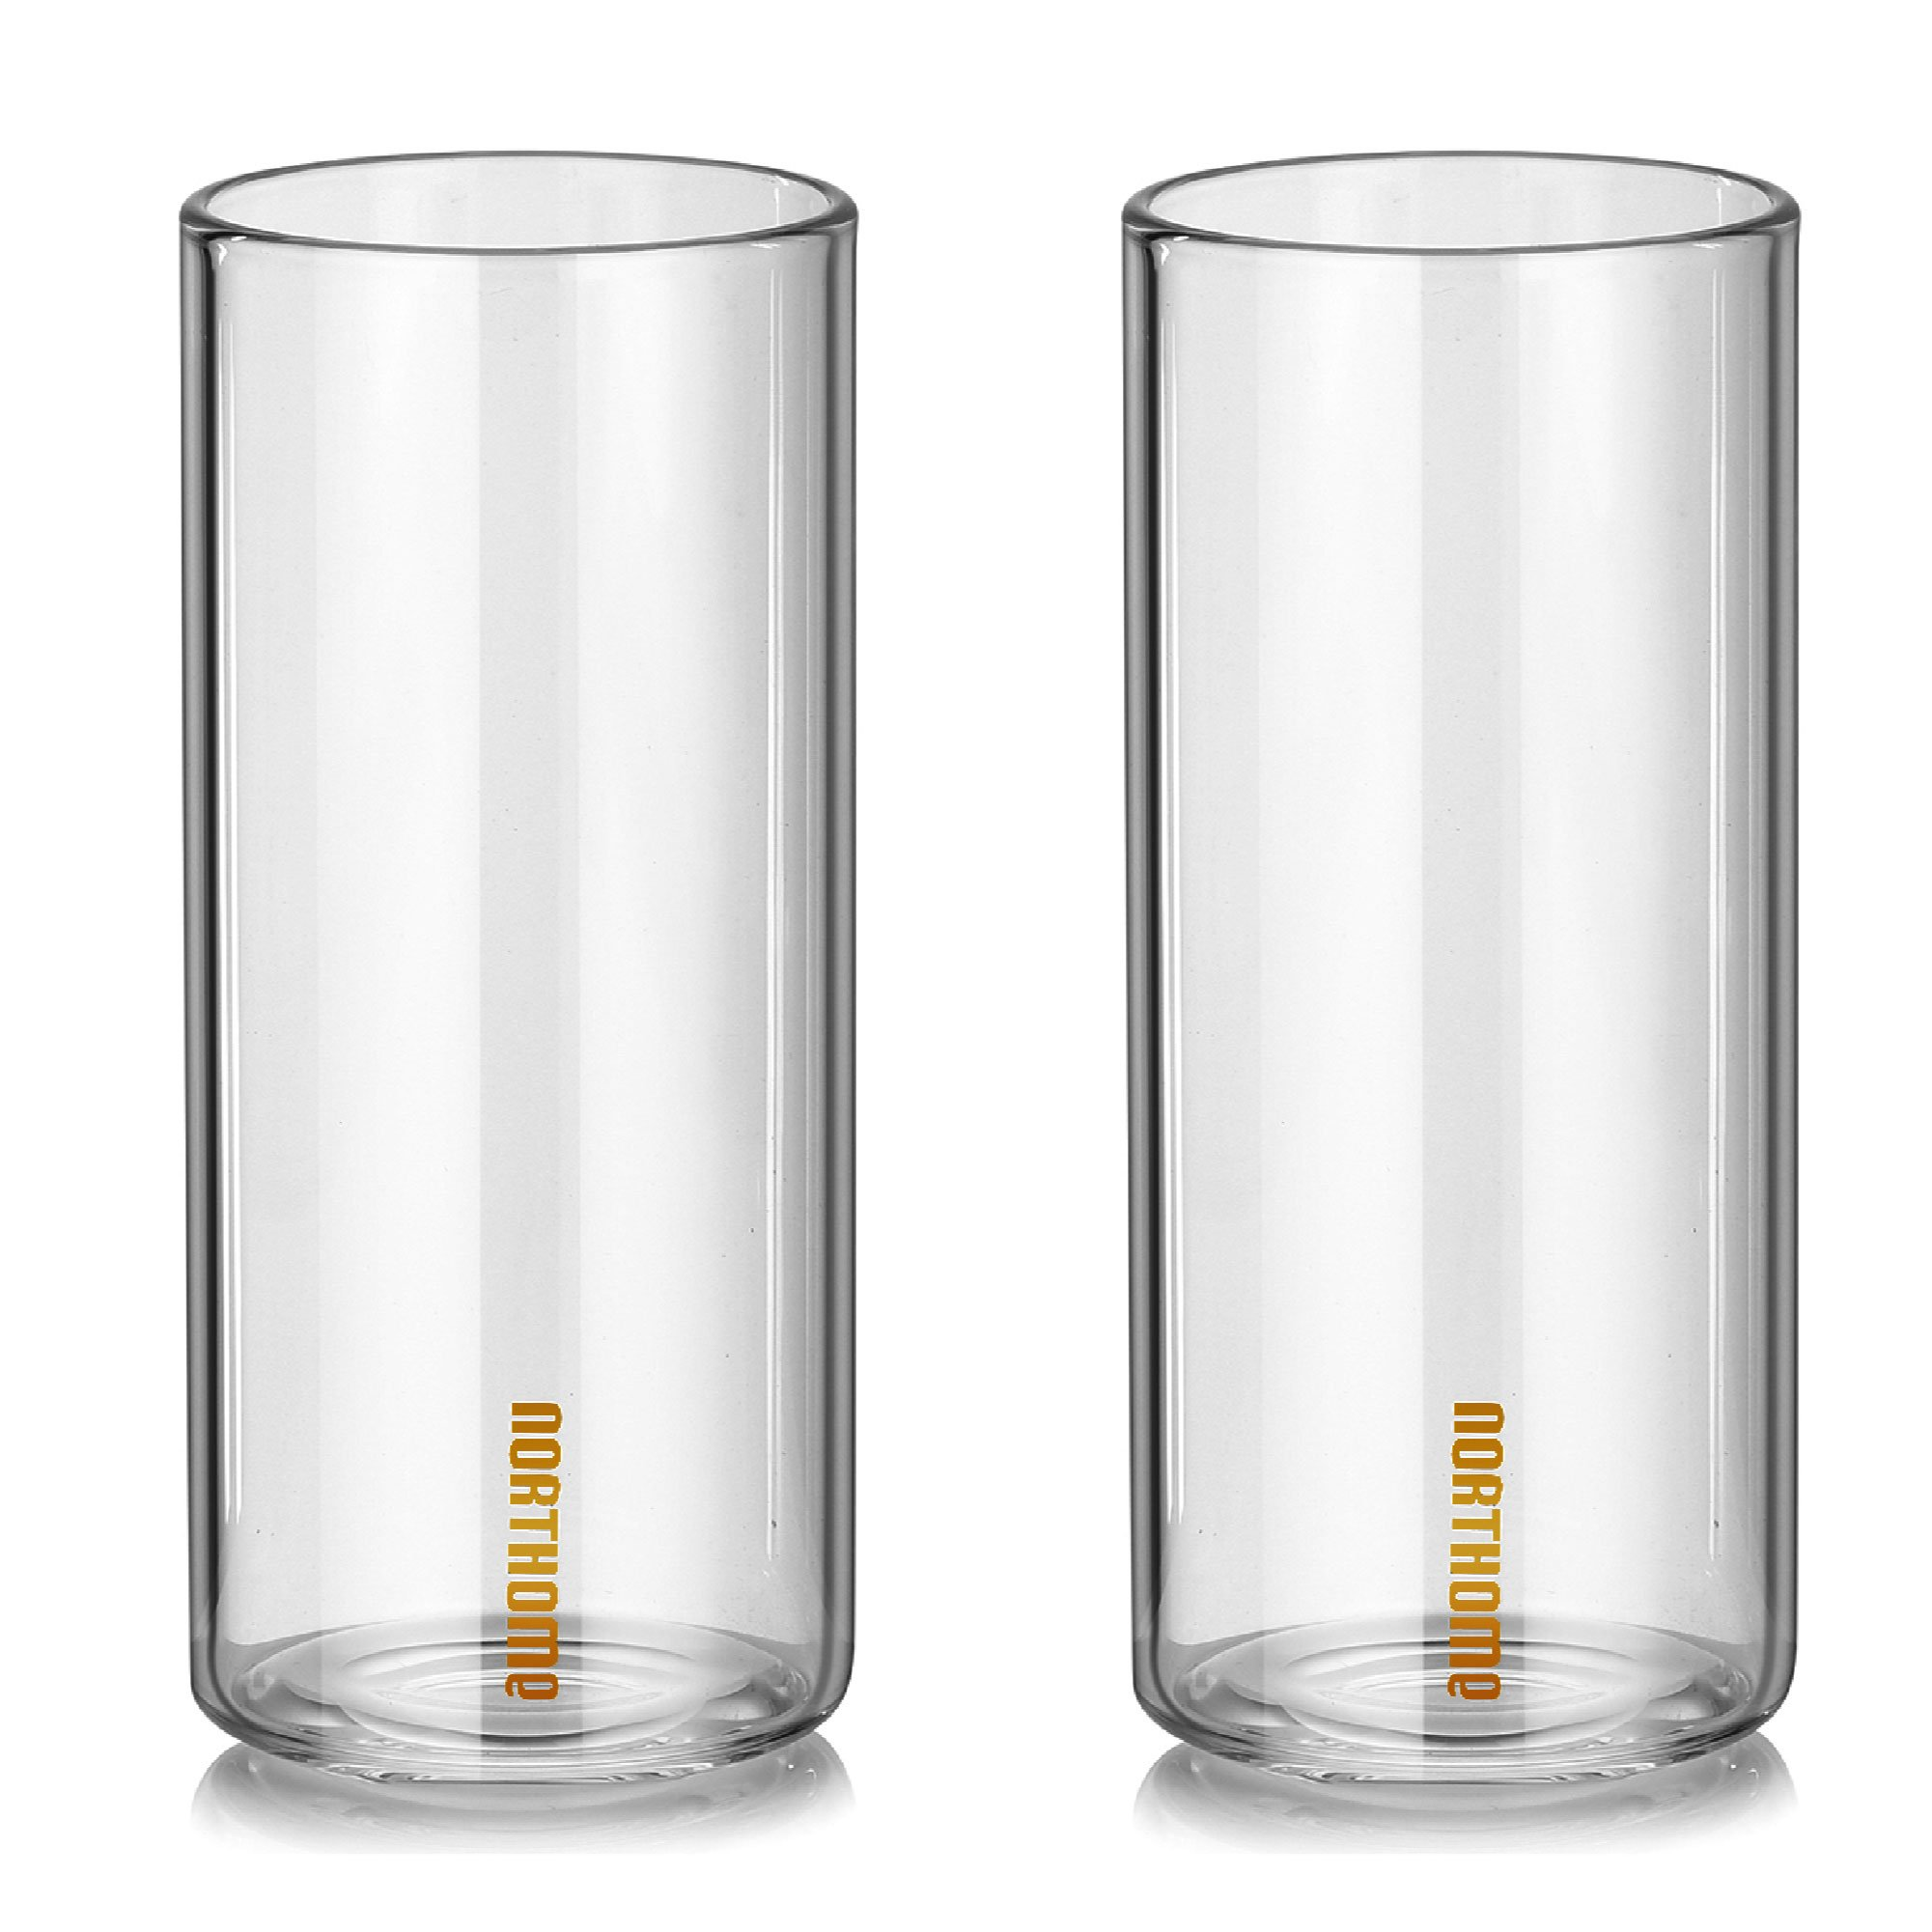 NORTHOME cool drinking glasses sets(two-piece)custom drinking glasses simple style hospitality drinking glasses